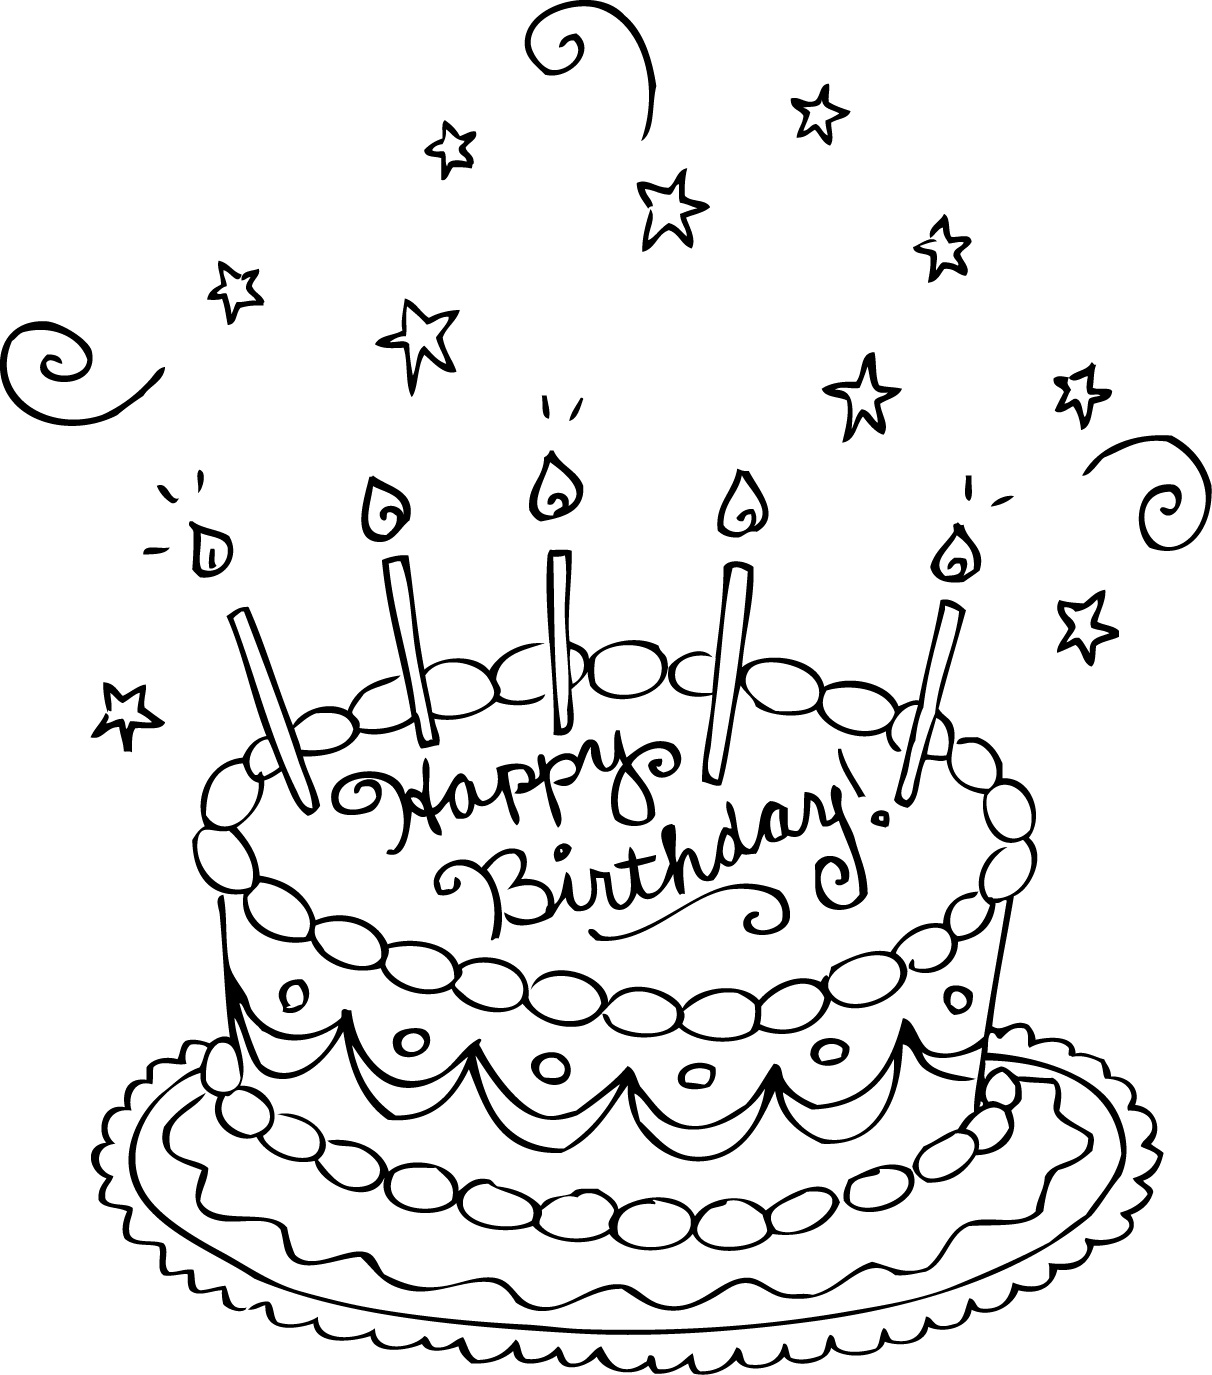 coloring cake pages birthday cake coloring pages to download and print for free pages coloring cake